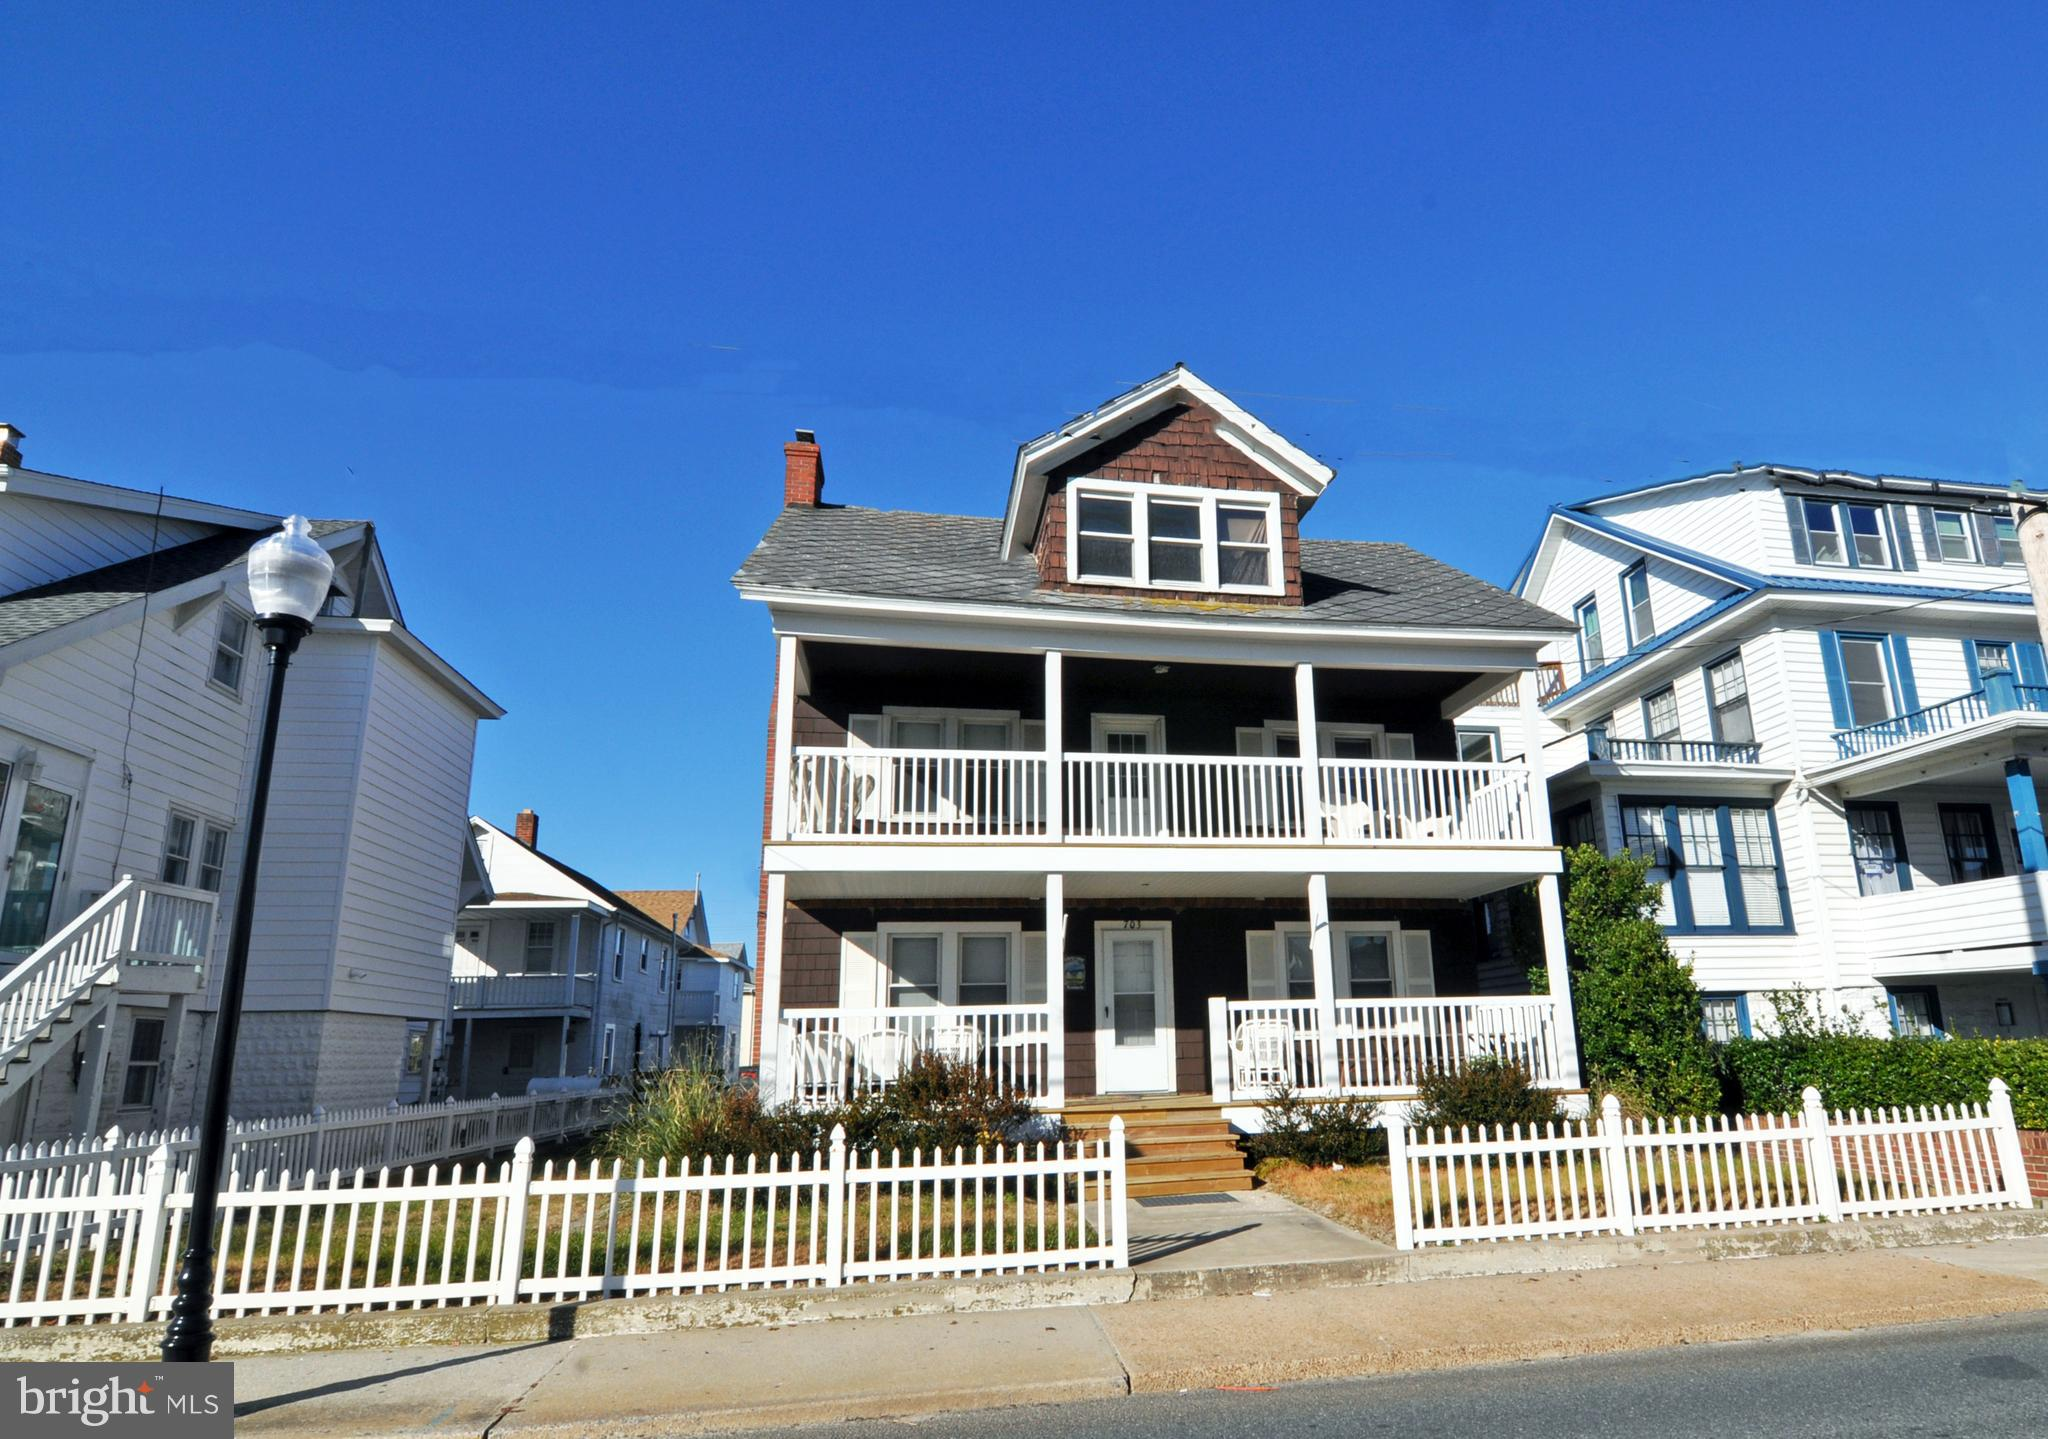 703 N BALTIMORE AVENUE, OCEAN CITY, MD 21842